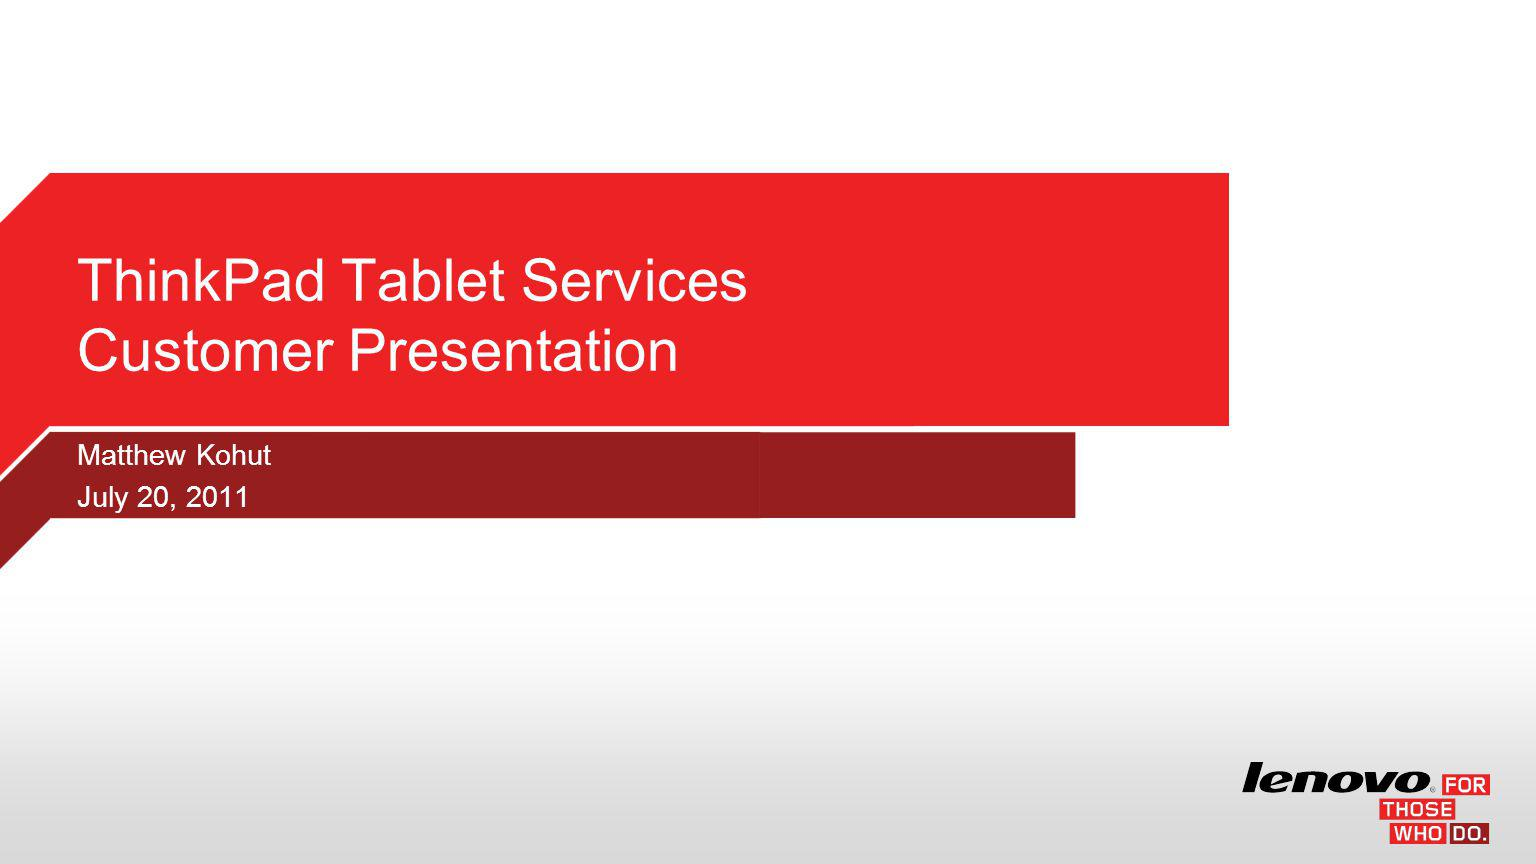 Matthew Kohut July 20, 2011 ThinkPad Tablet Services Customer Presentation